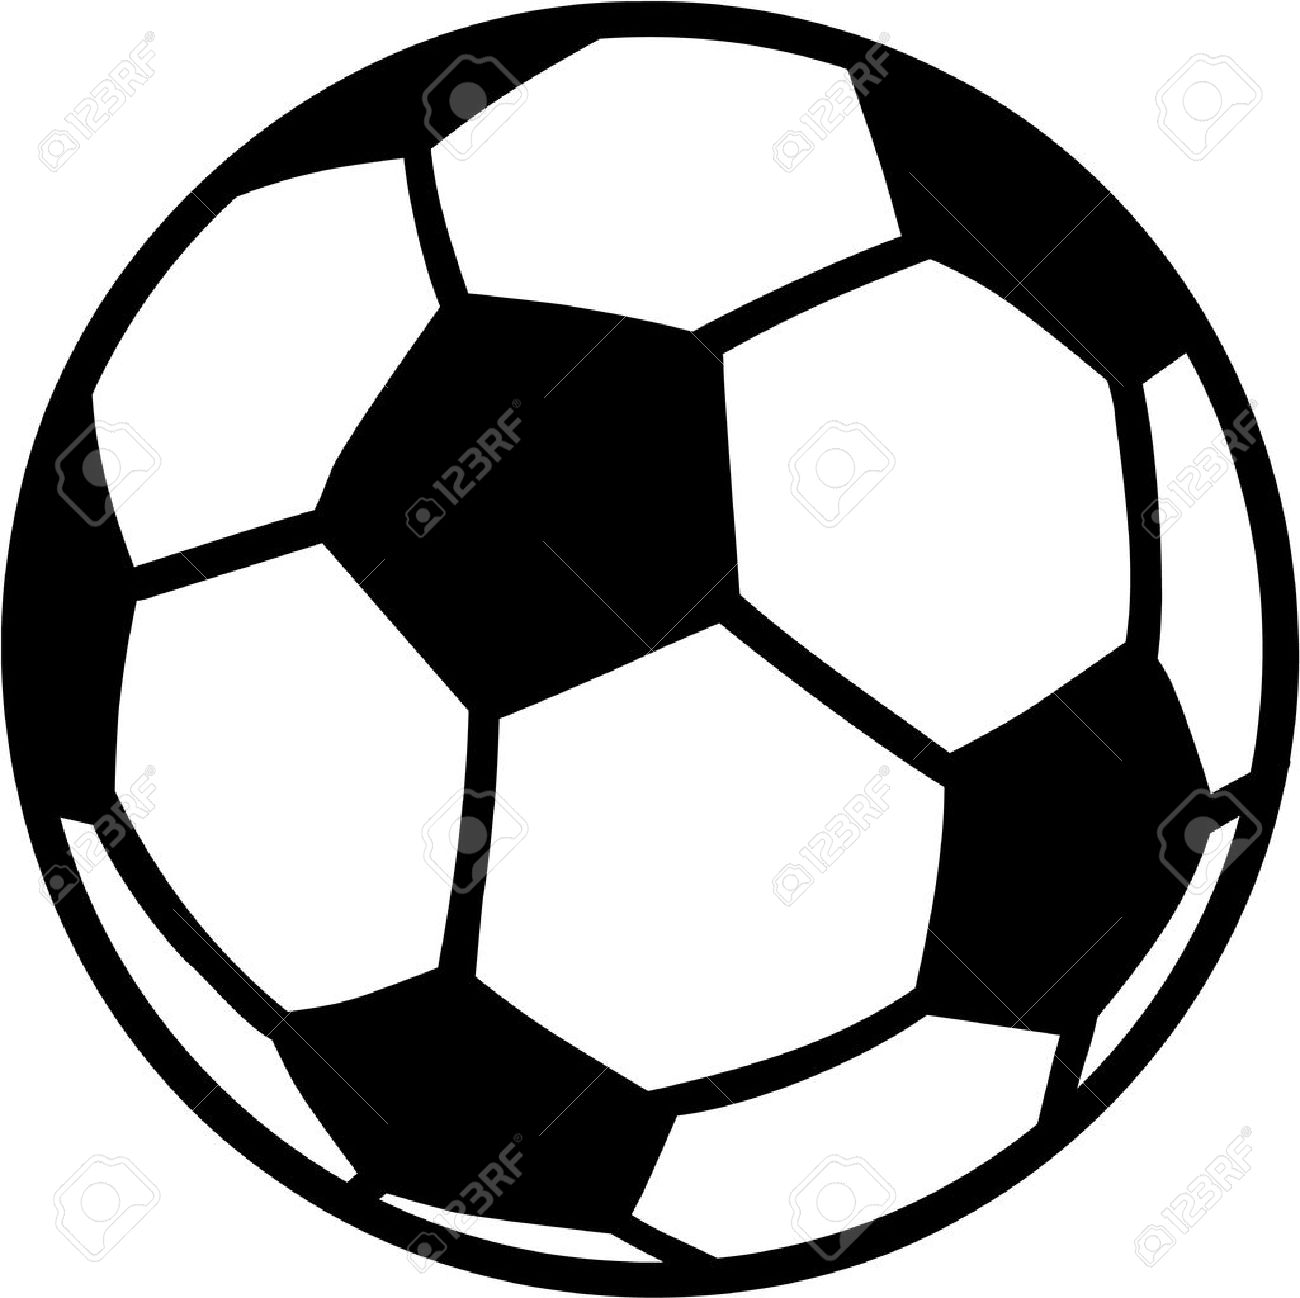 soccer ball royalty free cliparts vectors and stock illustration rh 123rf com soccer ball vector art soccer ball vector free